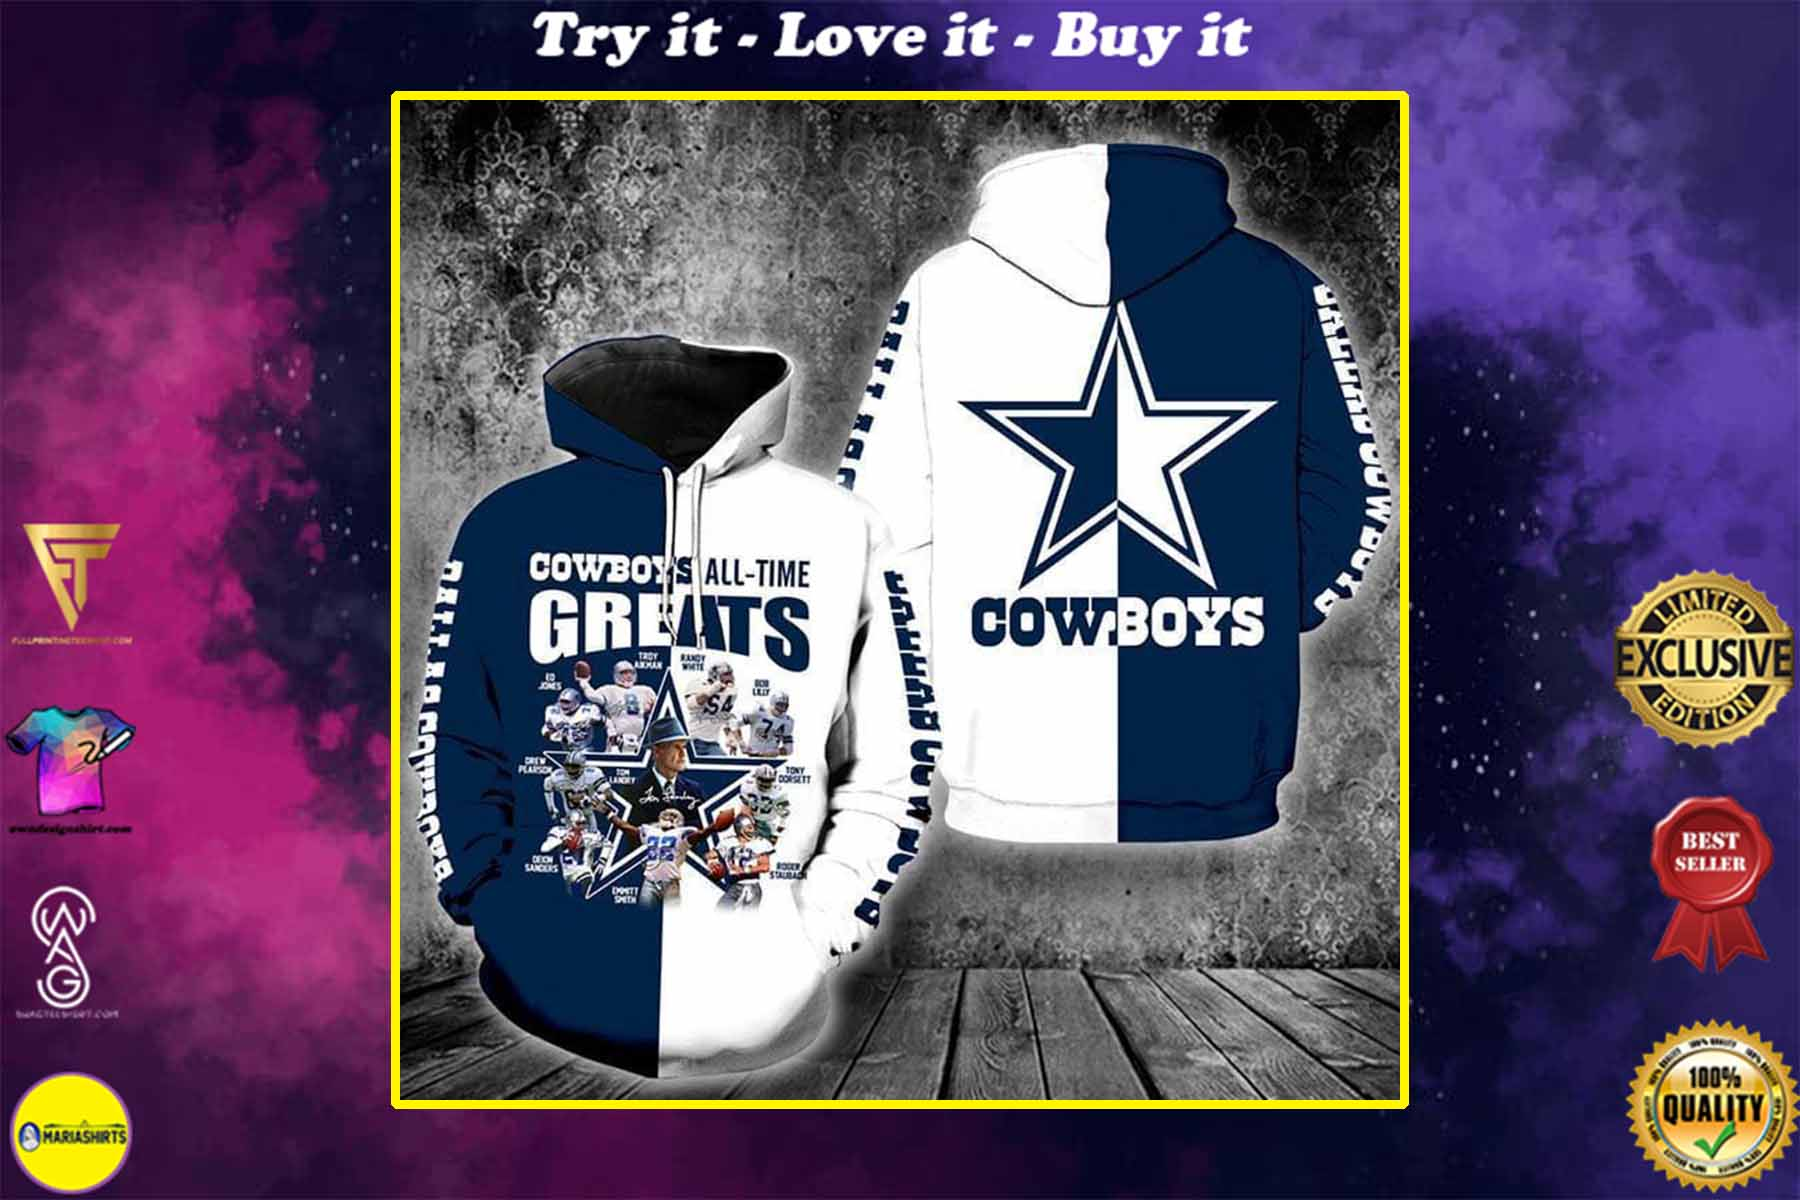 the dallas cowboys all time greats full over printed shirt